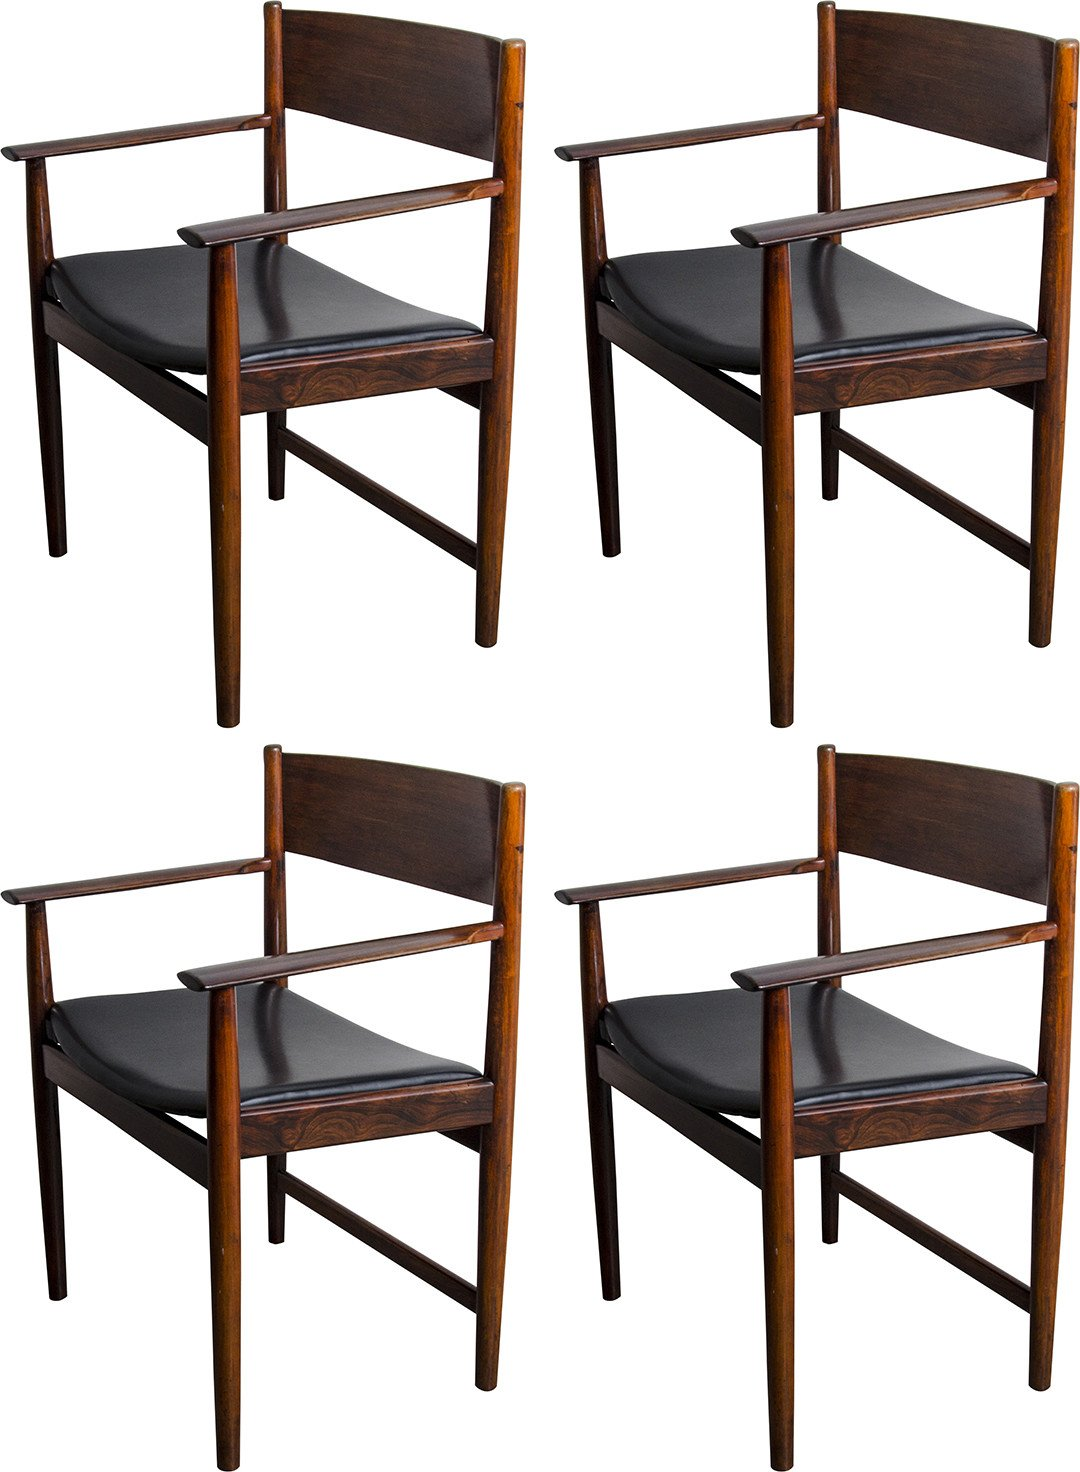 Set of Four Chairs by A. Vodder, Sibast, Denmark, 1960s